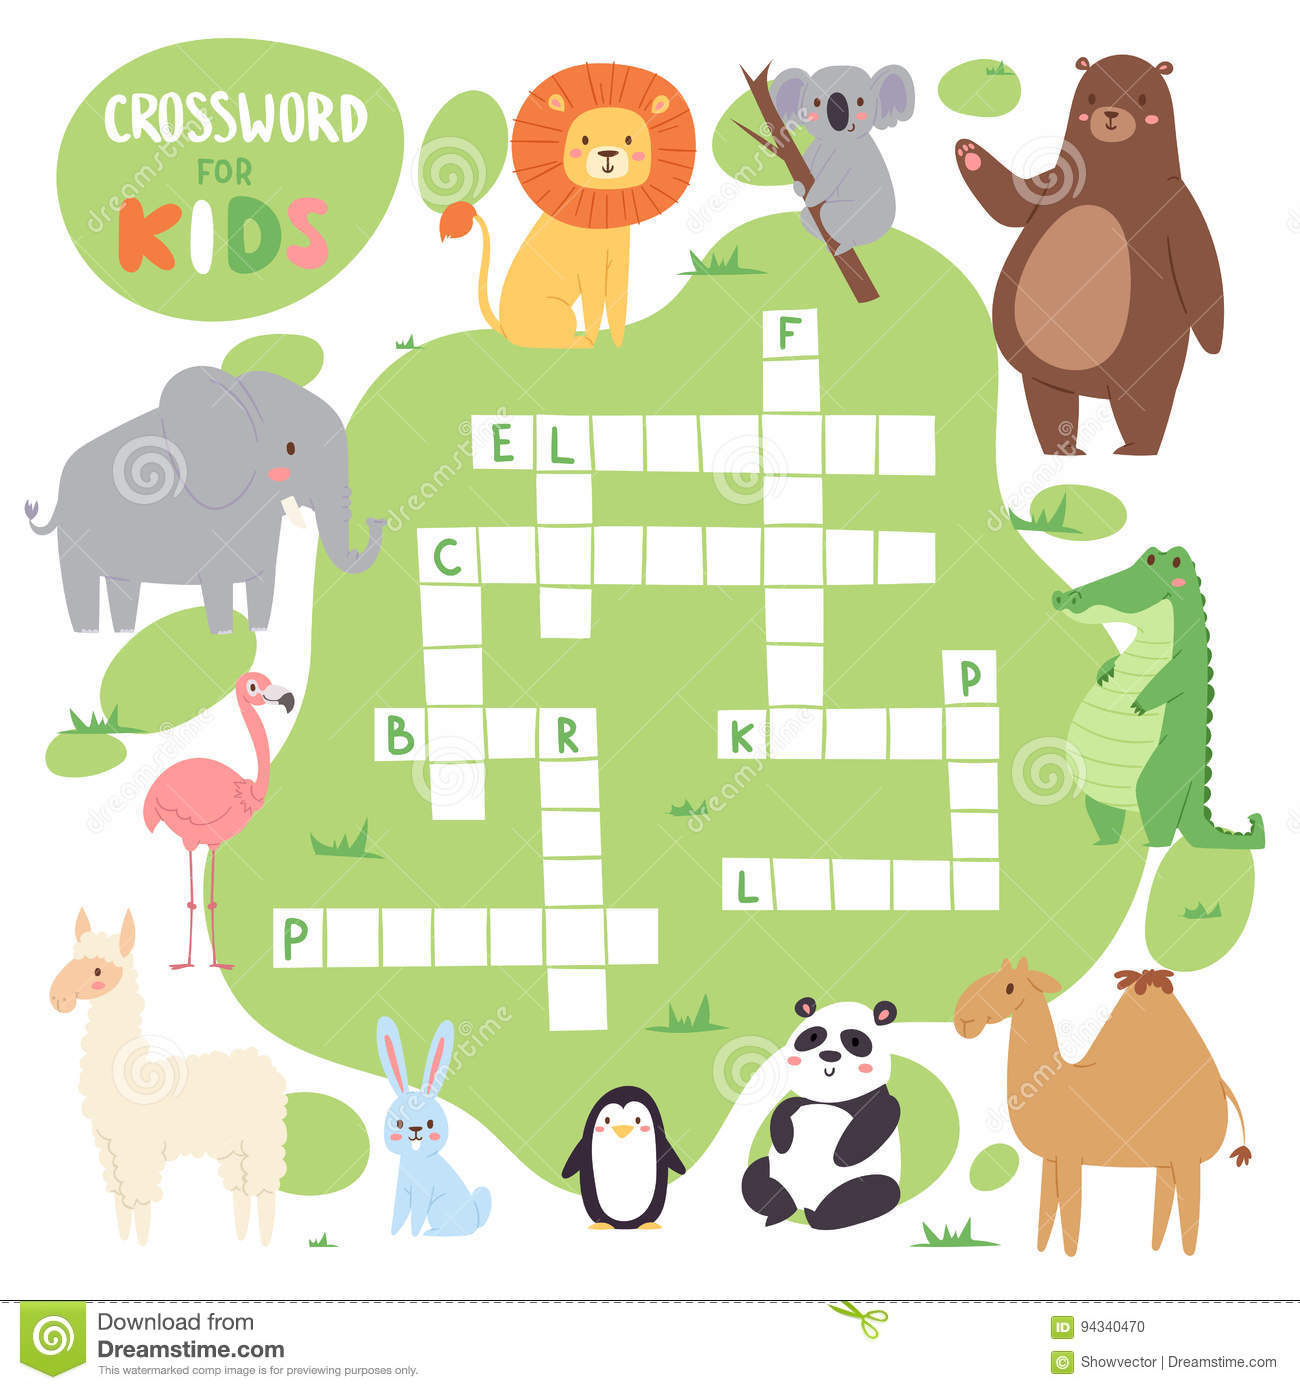 Kids Magazine Book Puzzle Game Of Forest Animals Logical Crossword Words Worksheet Colorful